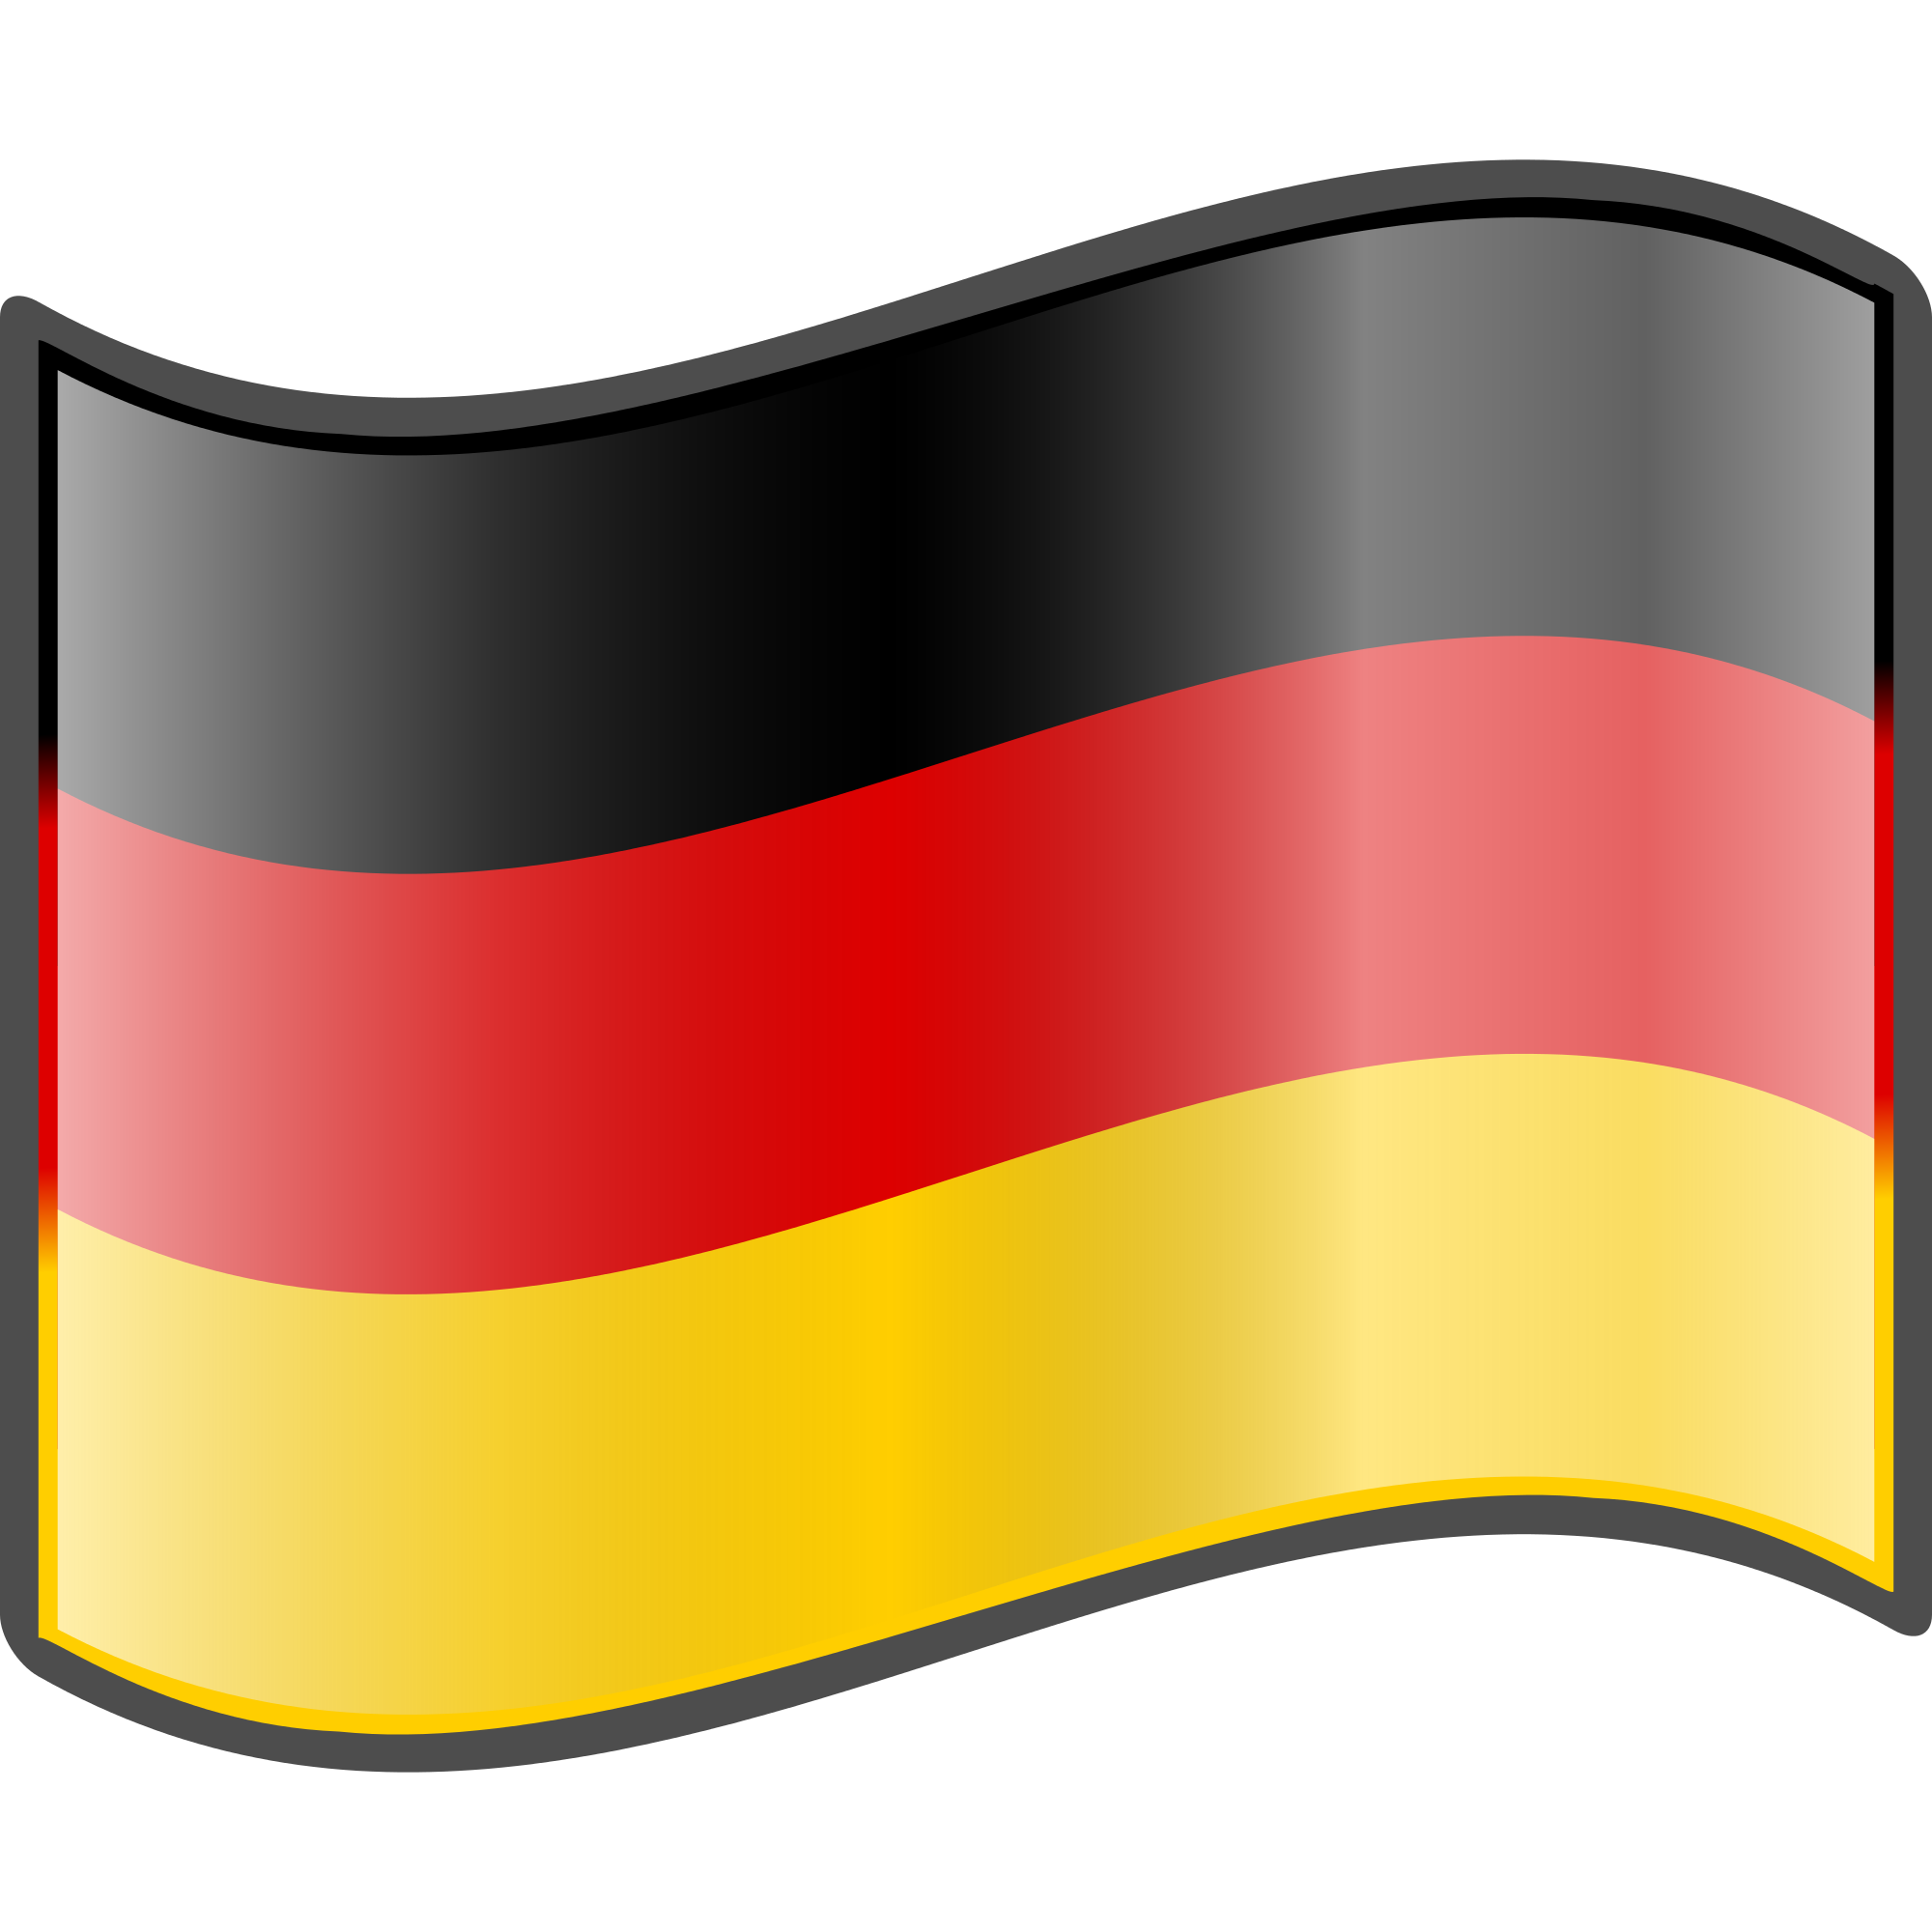 Picture Of The German Flag | Free download best Picture Of